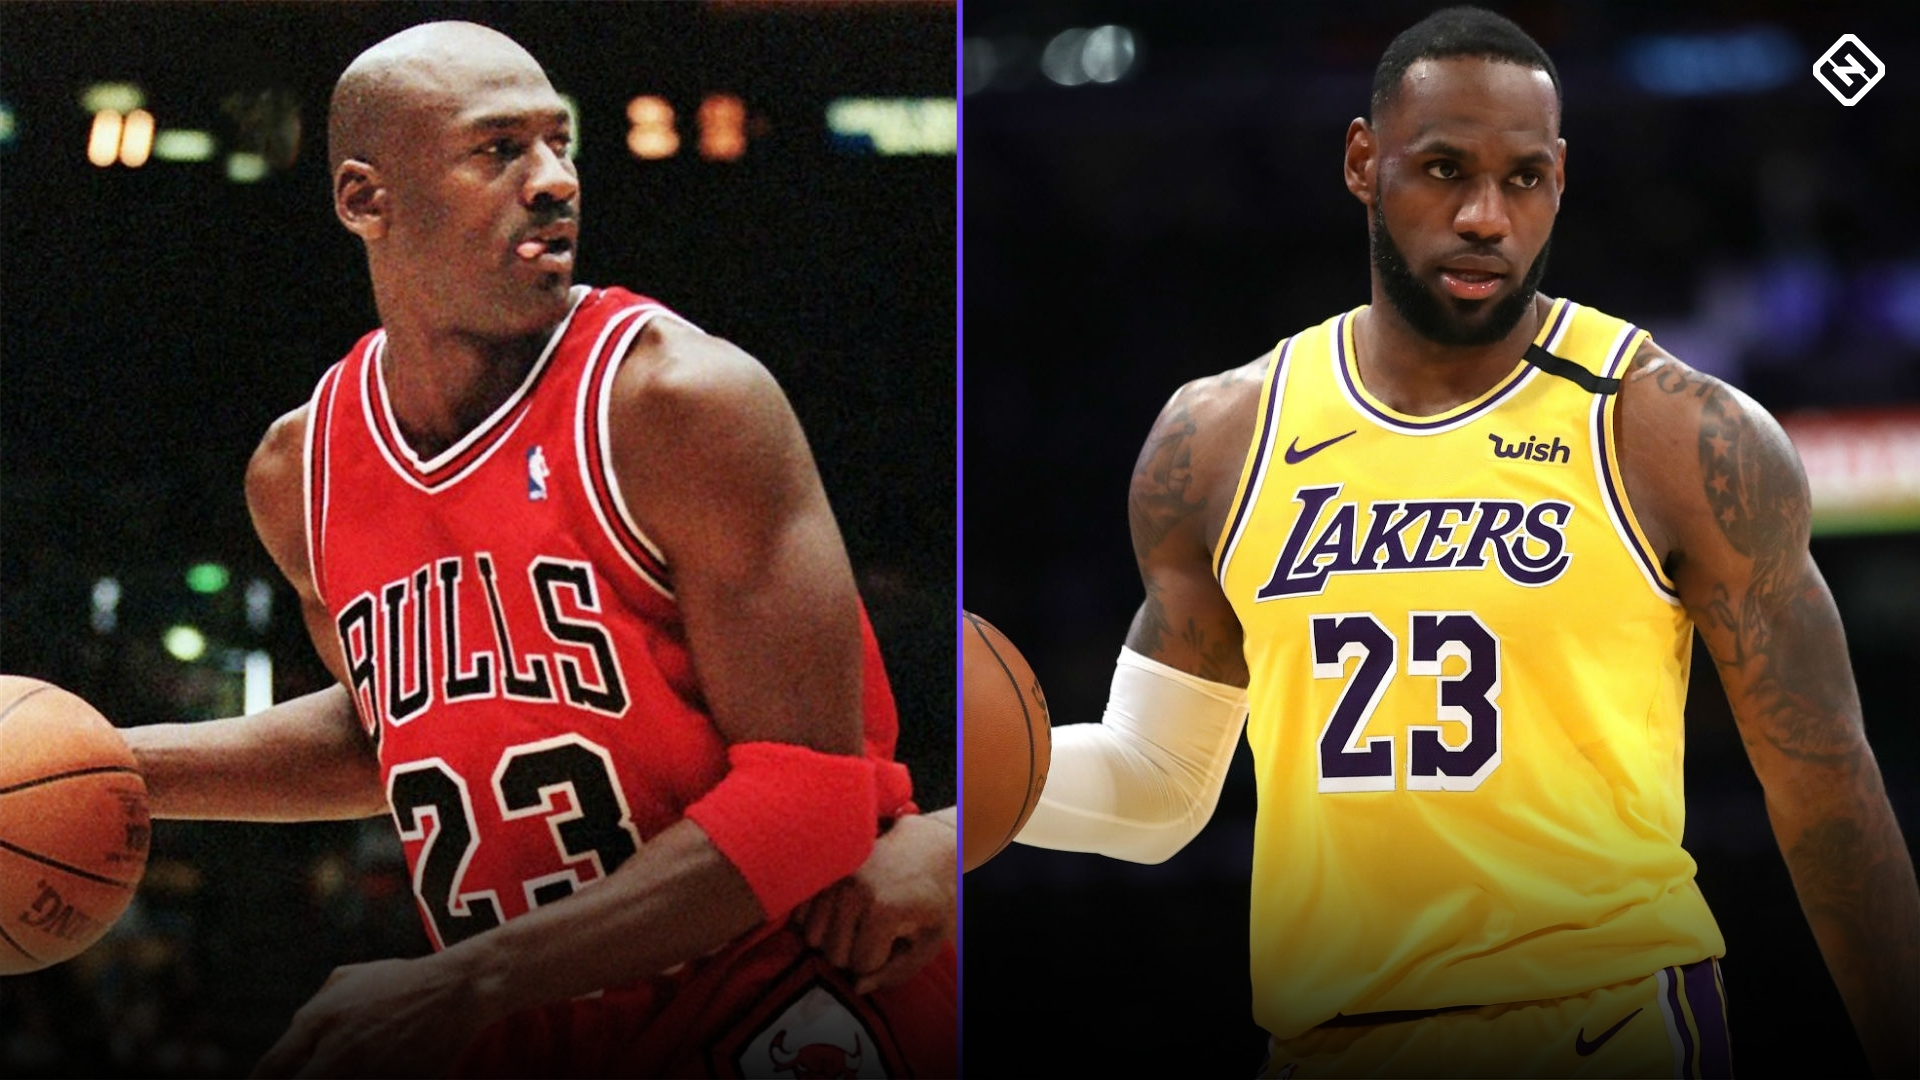 Michael Jordan or LeBron James? NBA fans have spoken, and the answer is not close